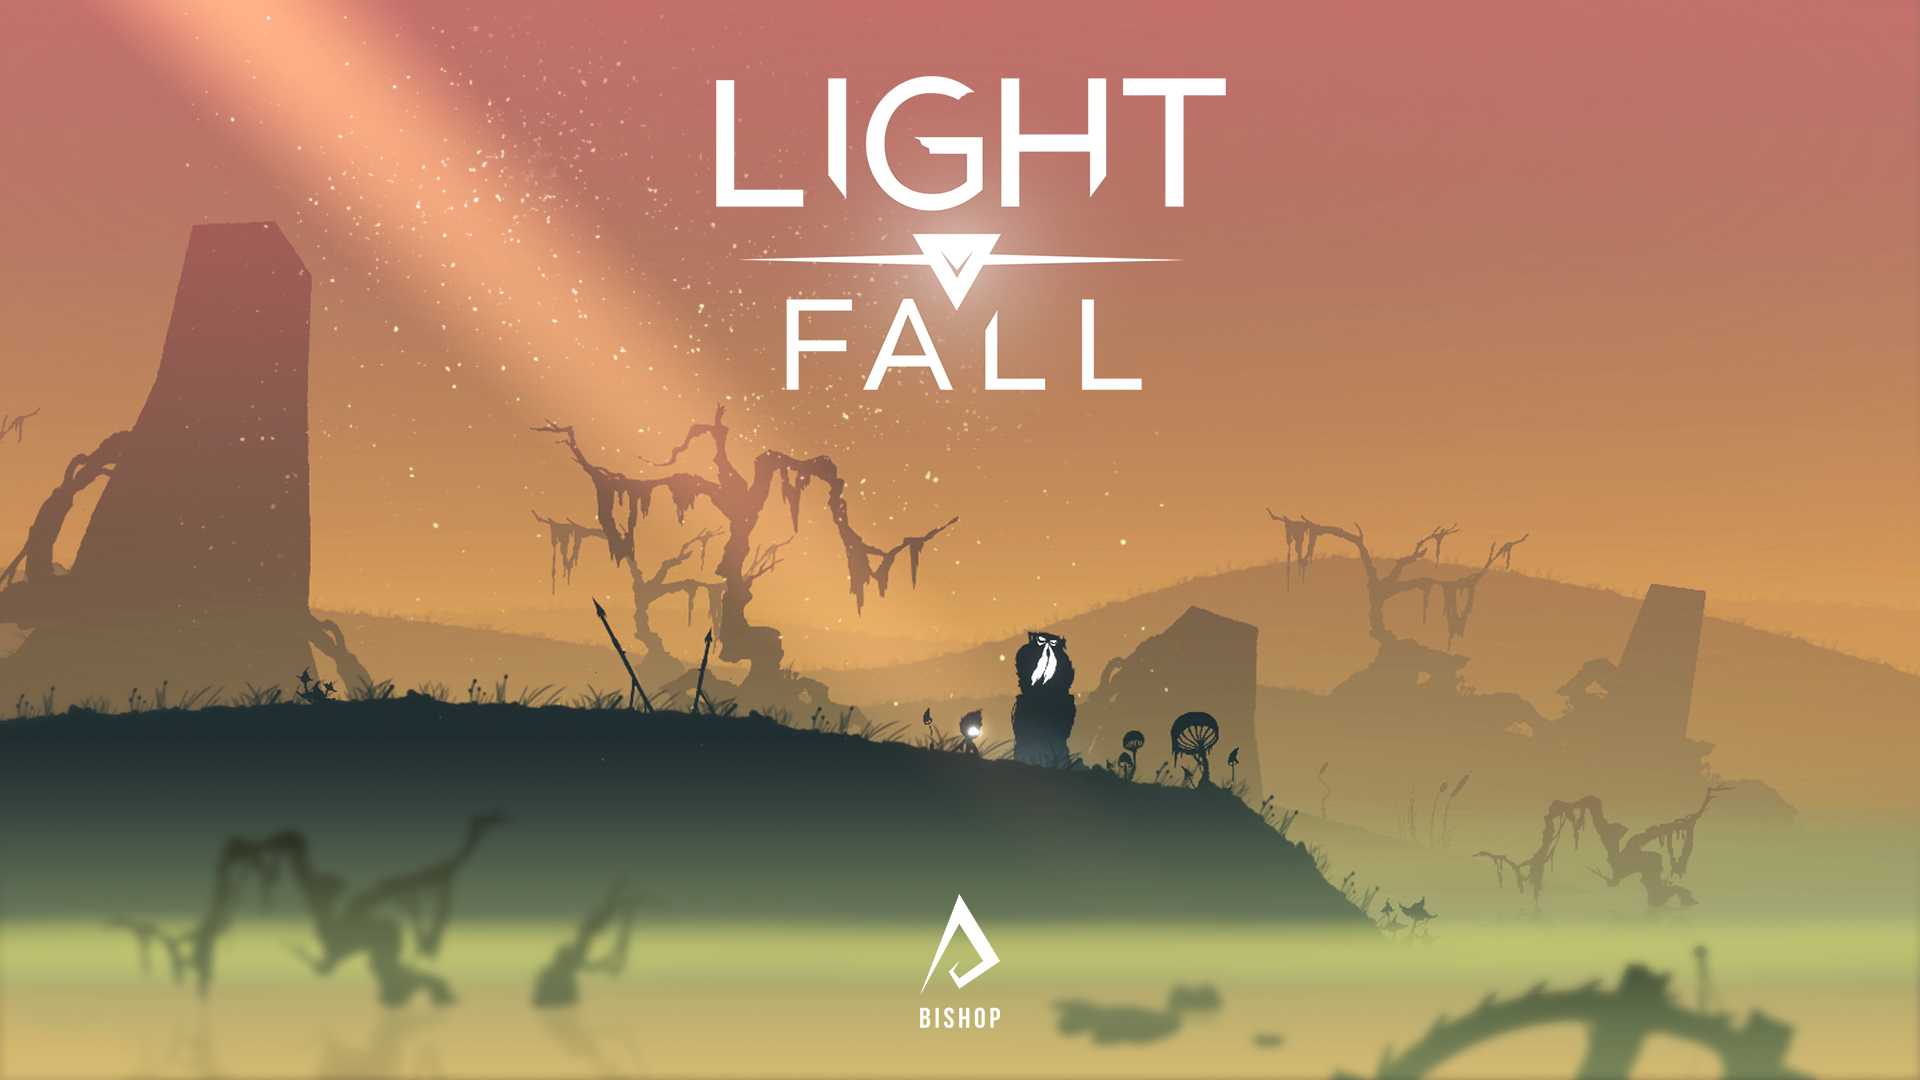 lightfall_06.jpg